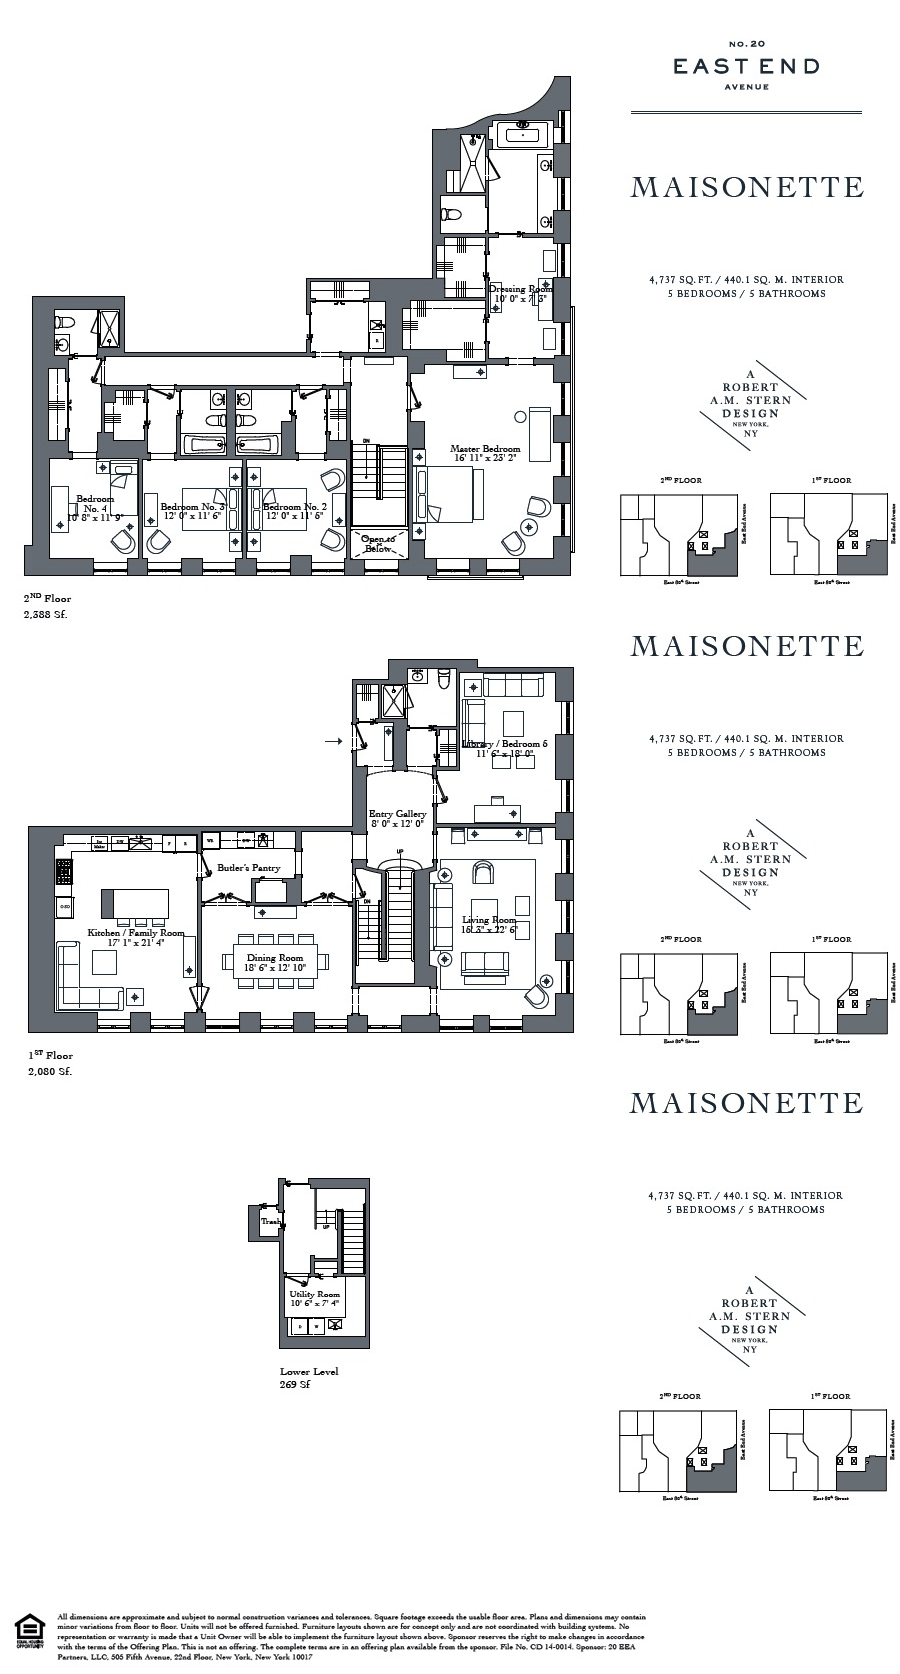 Corcoran 20 East End Avenue Apt M Upper East Side Real Estate Manhattan For Sale Homes Upper East S New York Apartments Plan Design Townhouse Apartments